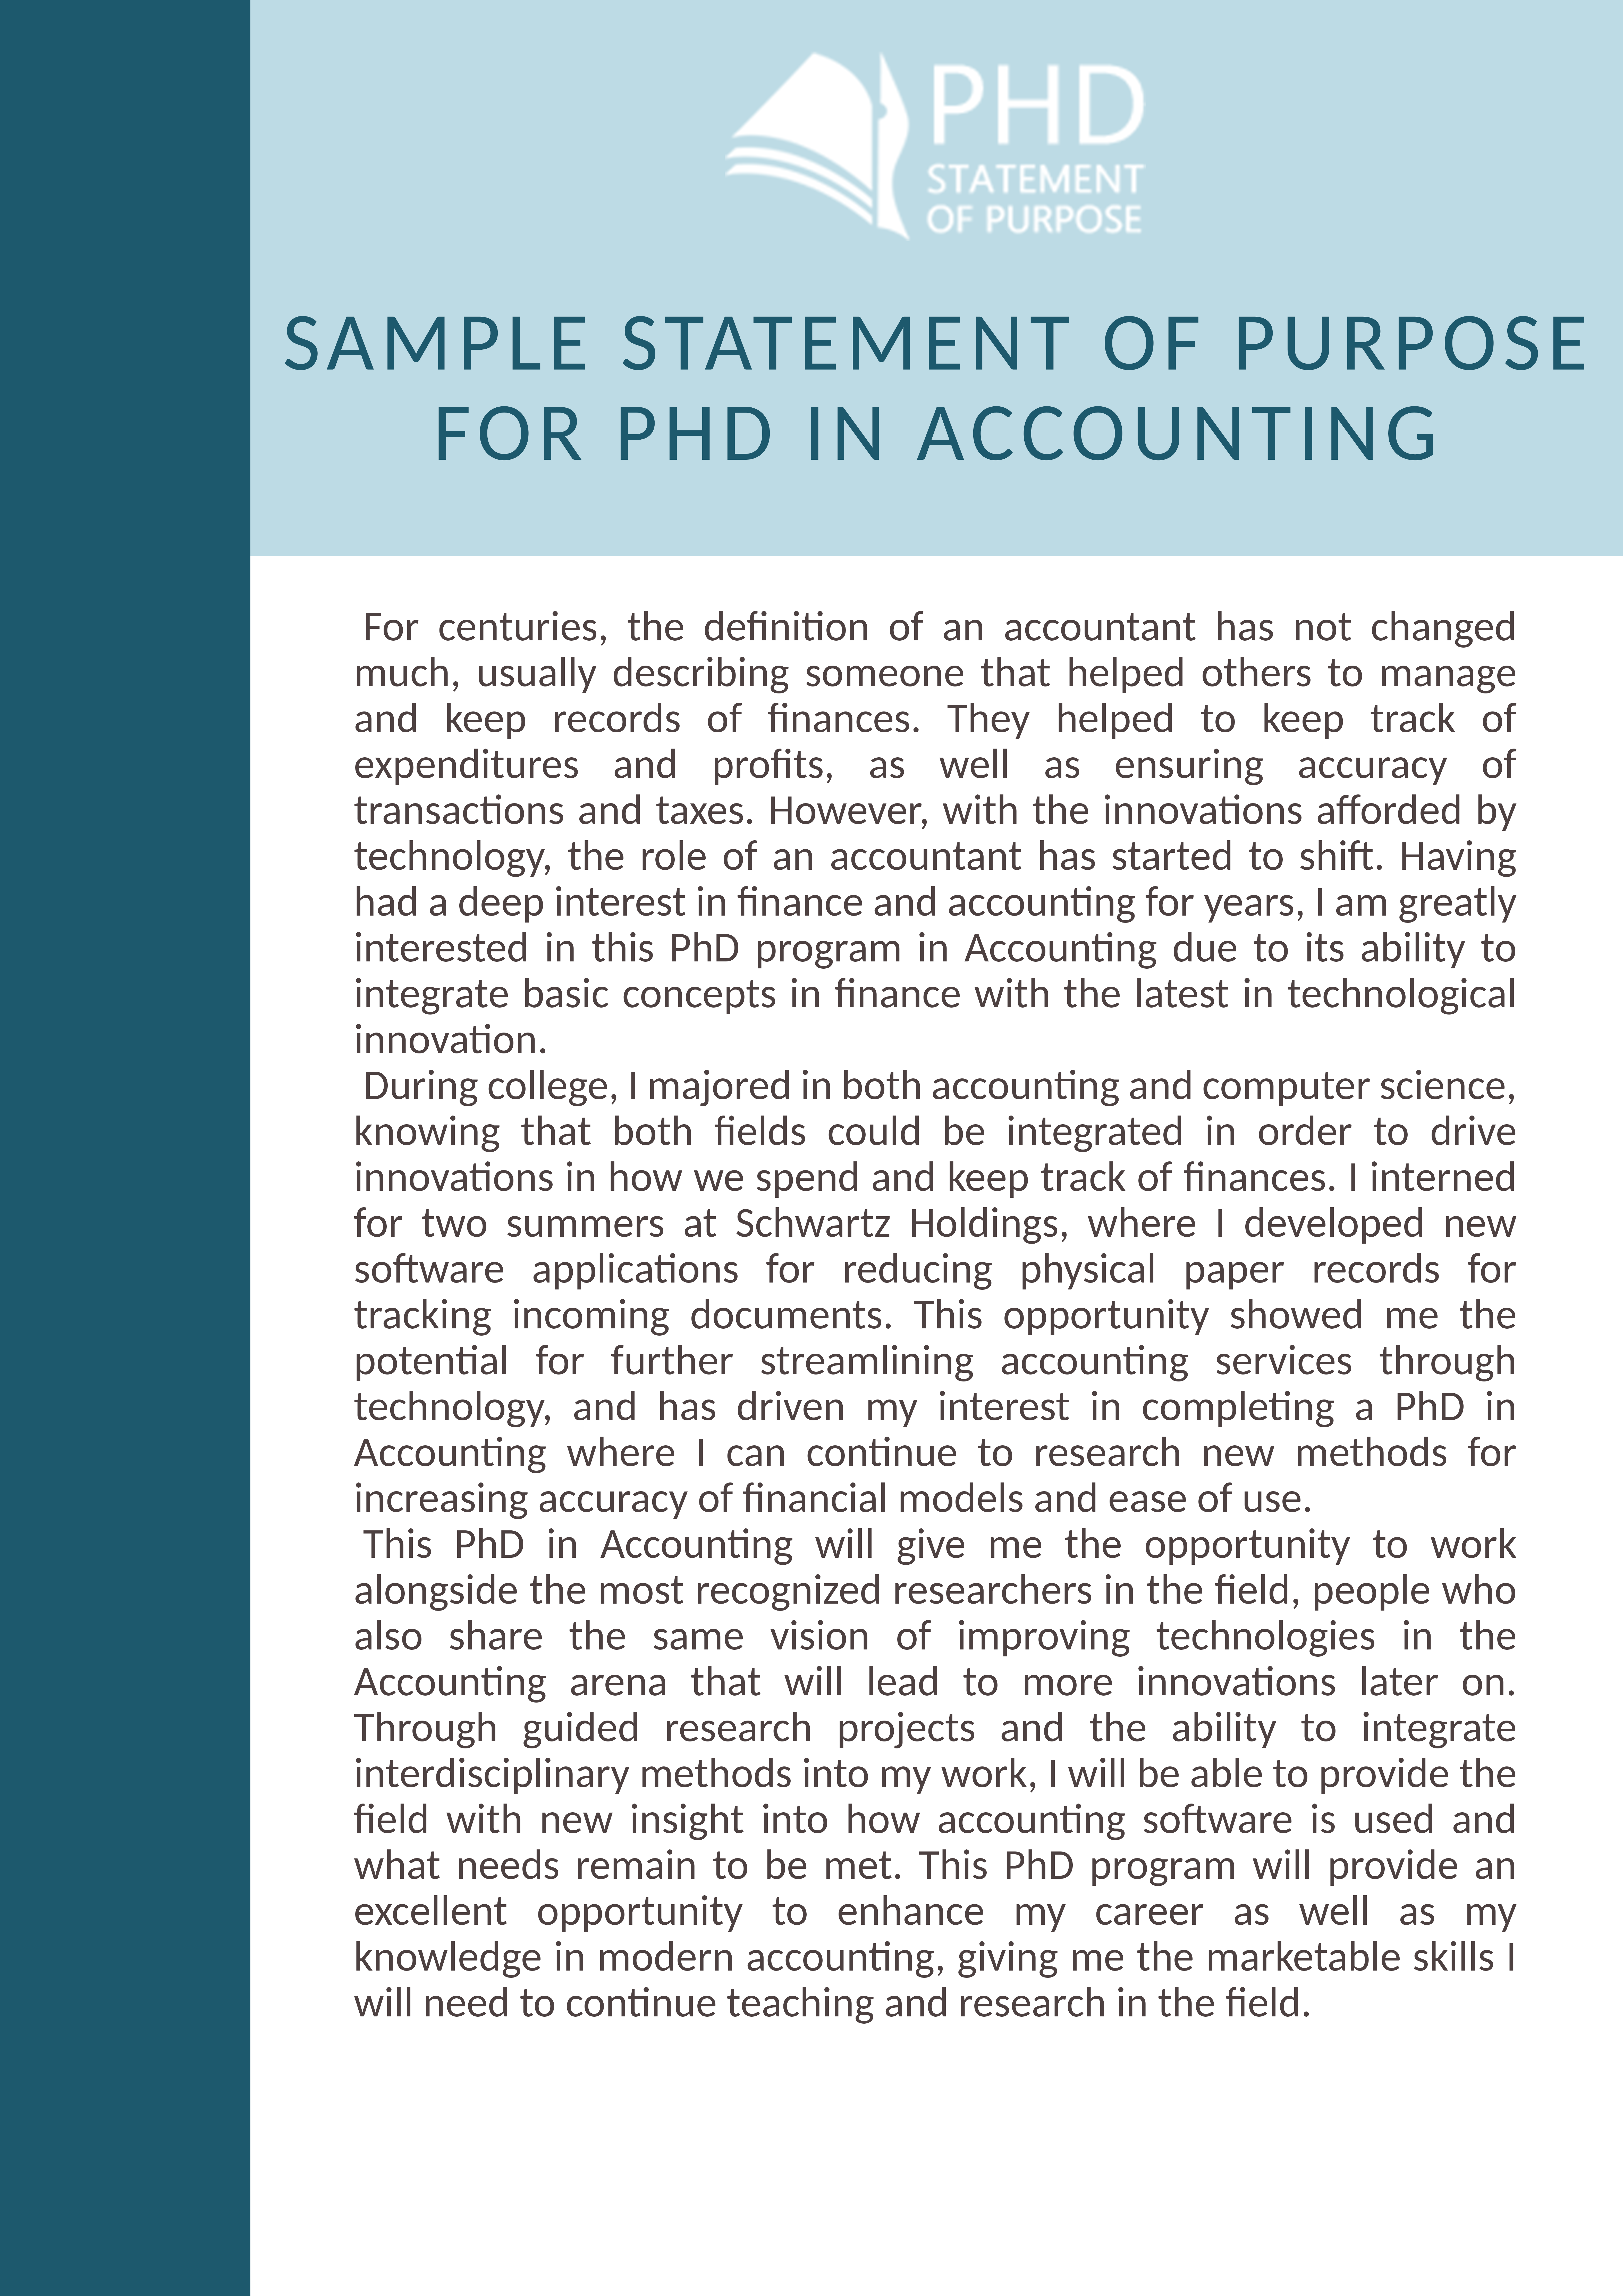 With Thi Sample Statement Of Purpose For Phd In Accounting You Will Never Have Any Writing Trouble Check More Here Pharmacology Dissertation Topic Ideas Idea